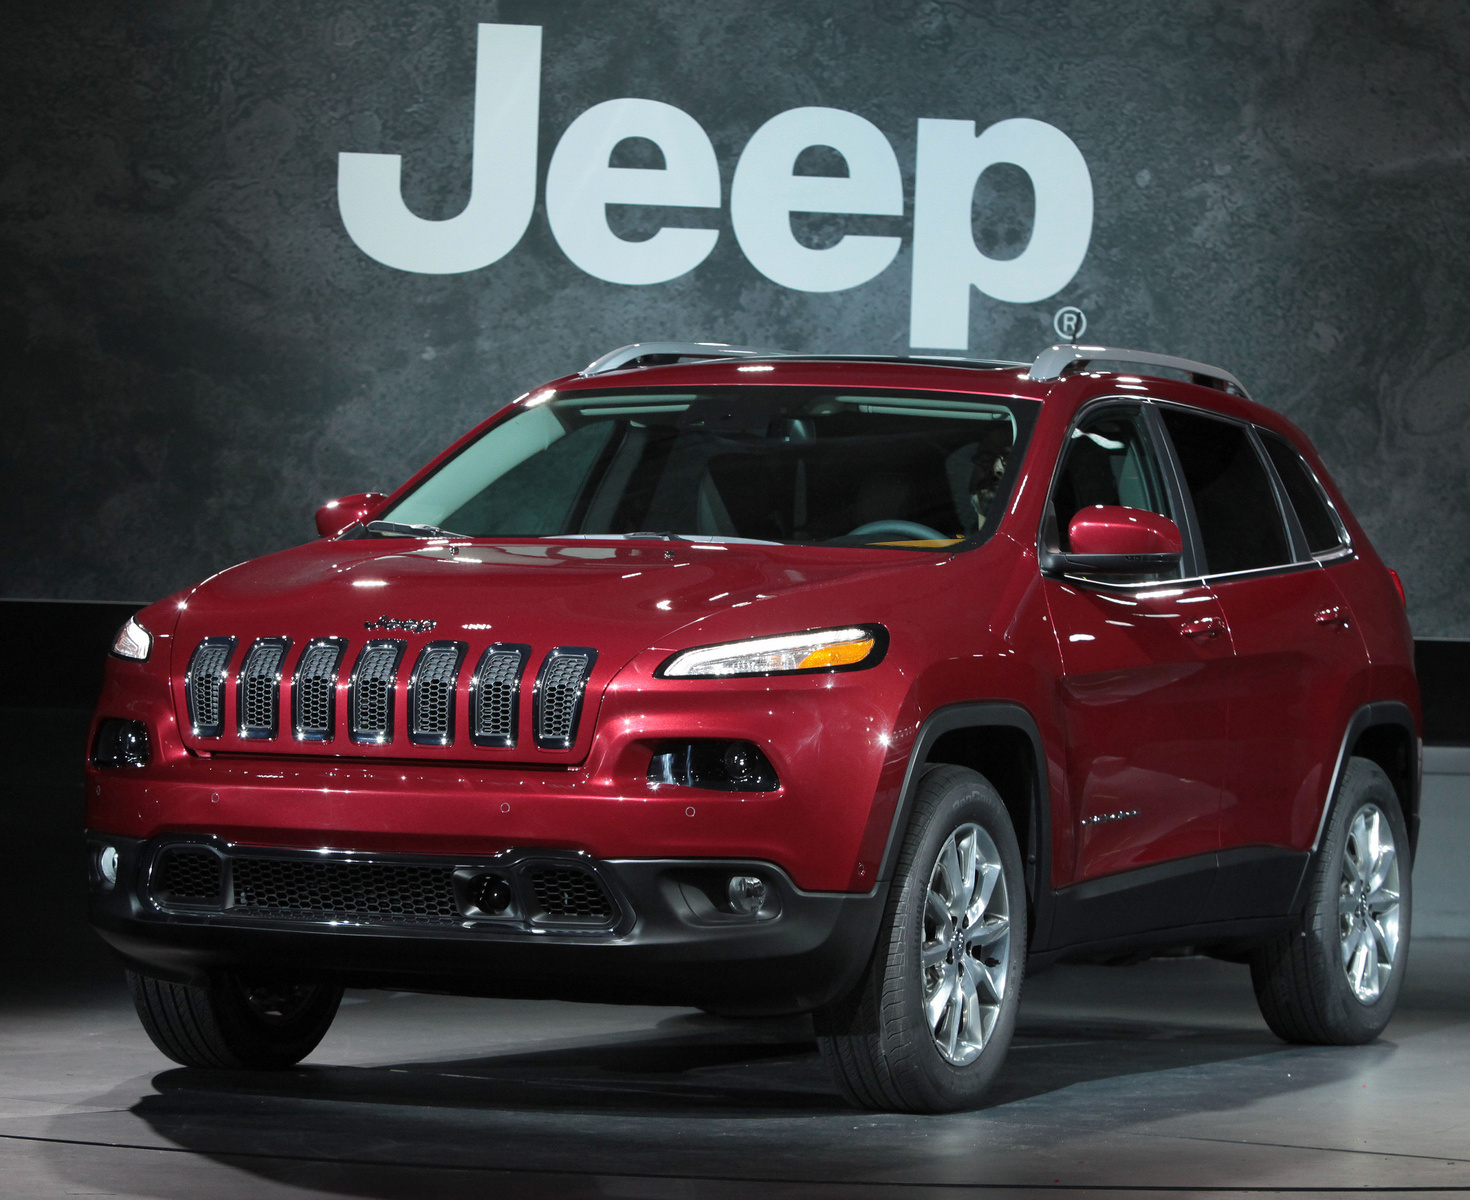 2014 jeep cherokee test drive review cargurus. Black Bedroom Furniture Sets. Home Design Ideas